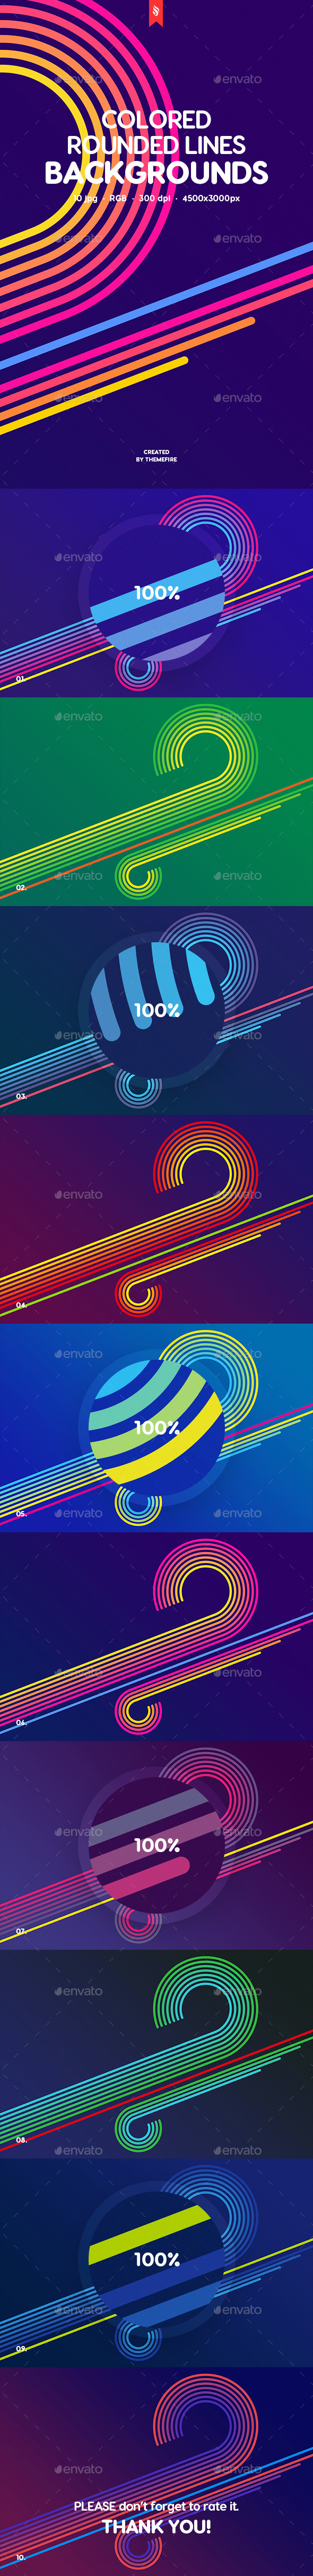 Colored Rounded Lines Backgrounds - Abstract Backgrounds